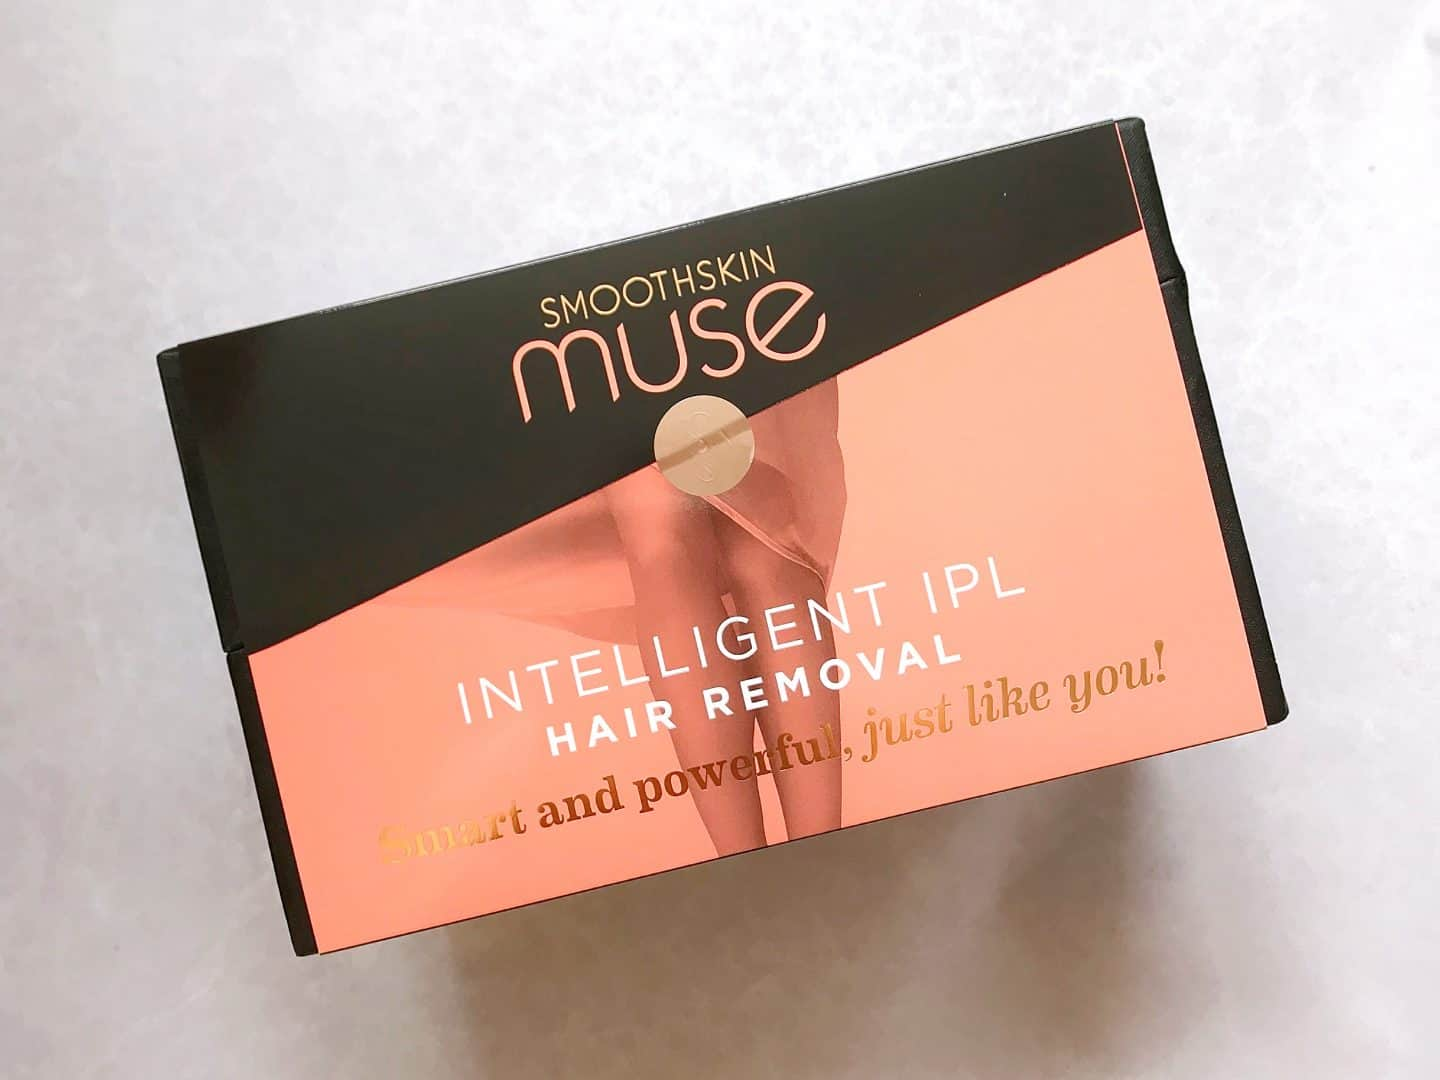 SmoothSkin Muse IPL Hair Remover